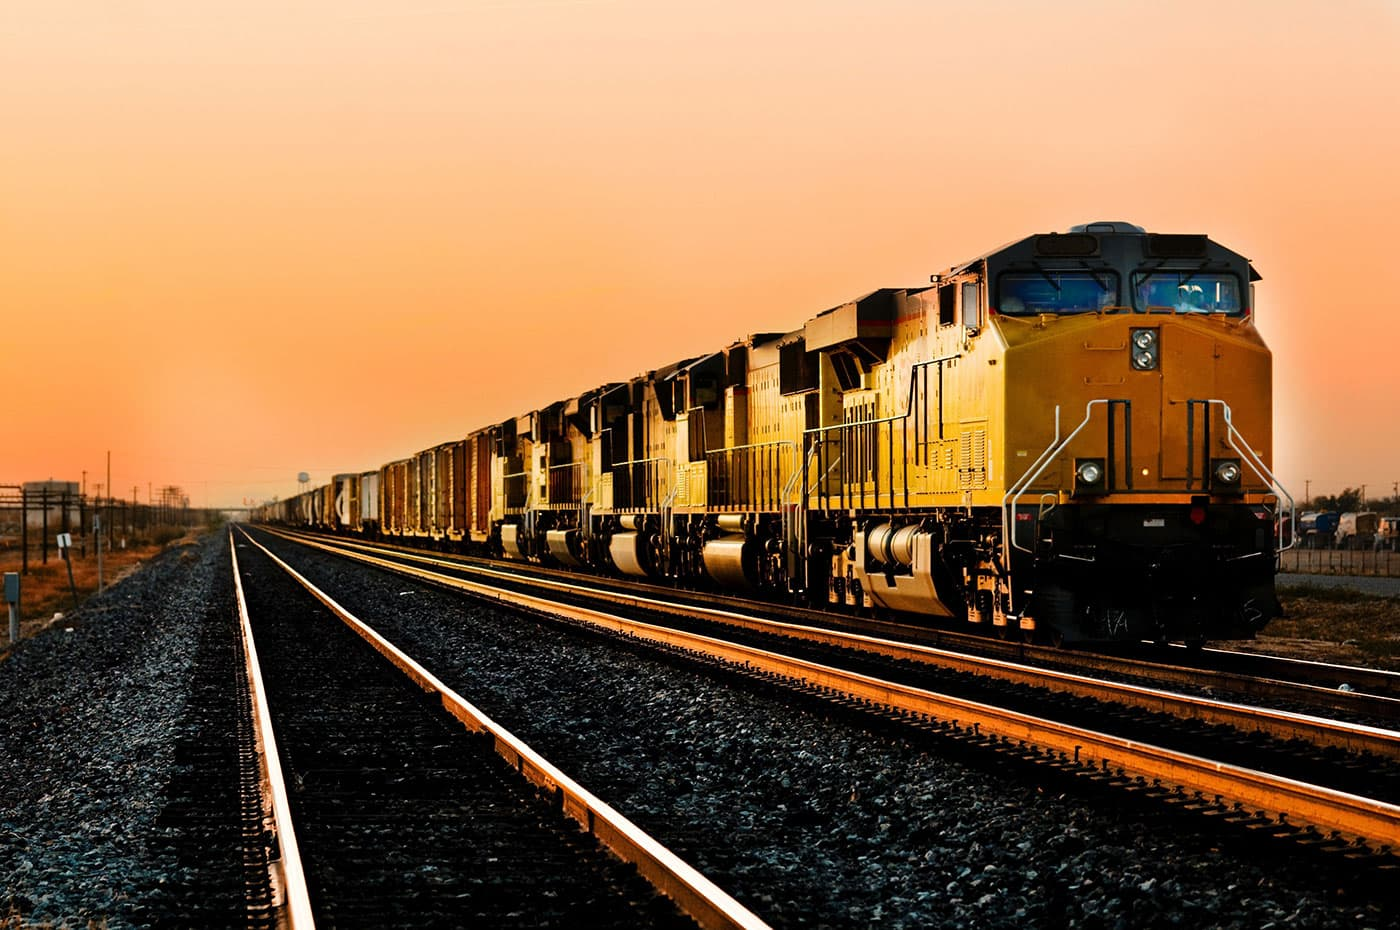 Acme OEM Transportation | Cargo locomotive railroad engine crossing the desert at sunset